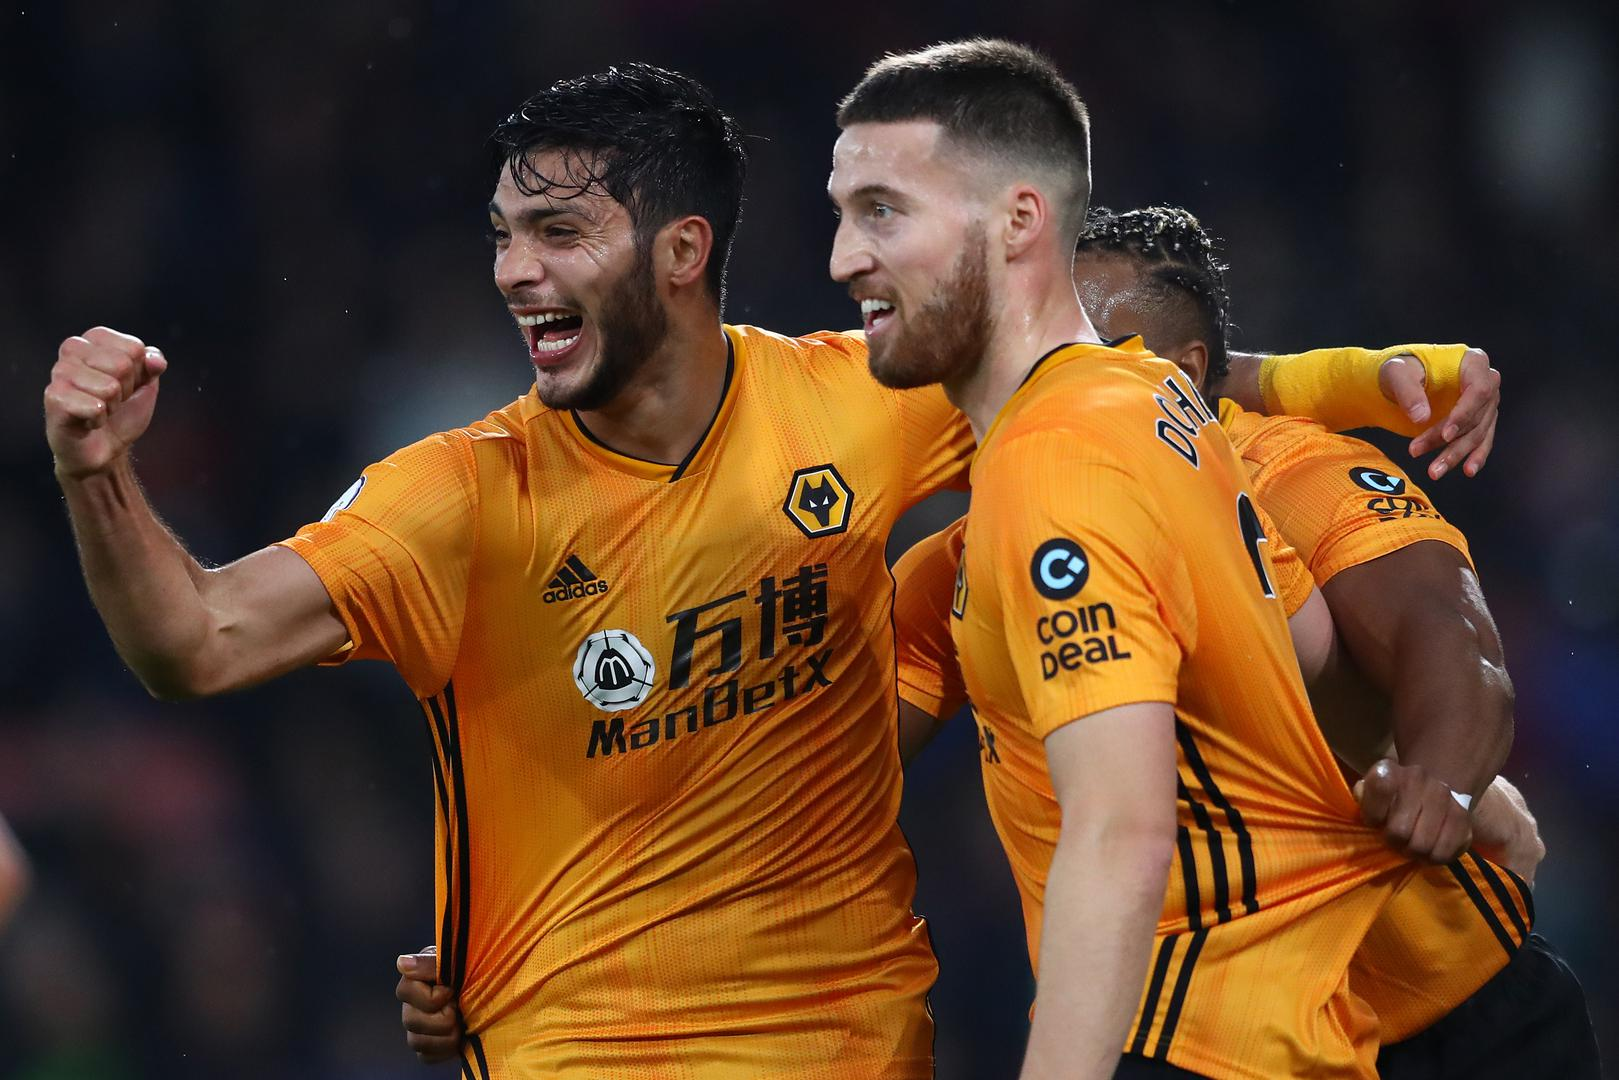 Wolverhampton Wanderers players celebrate scoring a goal.